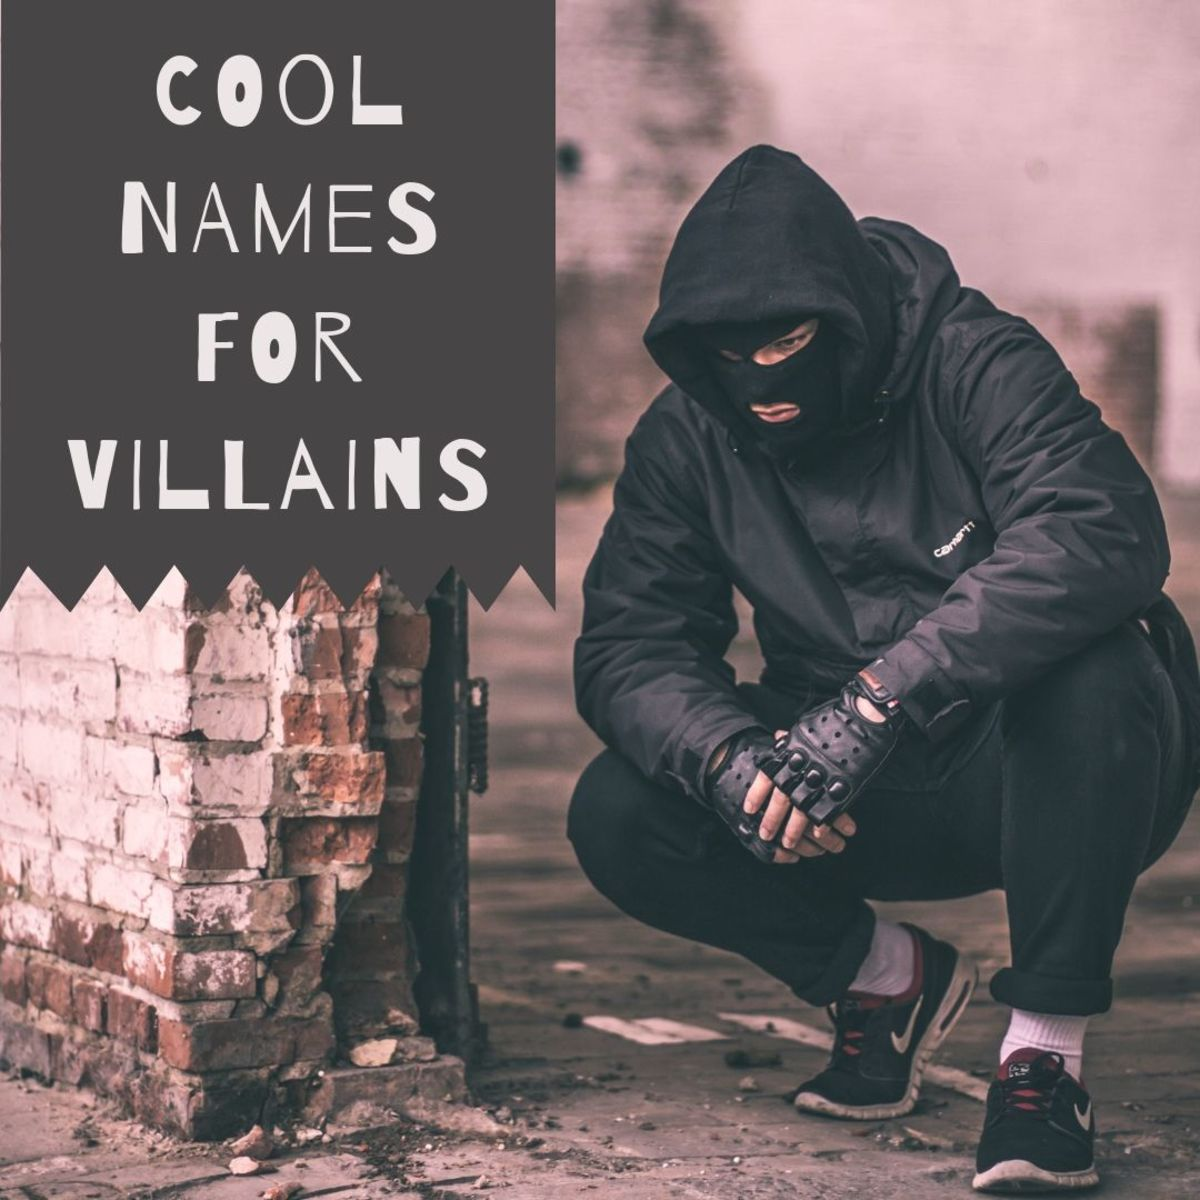 350+ Cool Villain Names: Being Bad Is More Fun Than Being